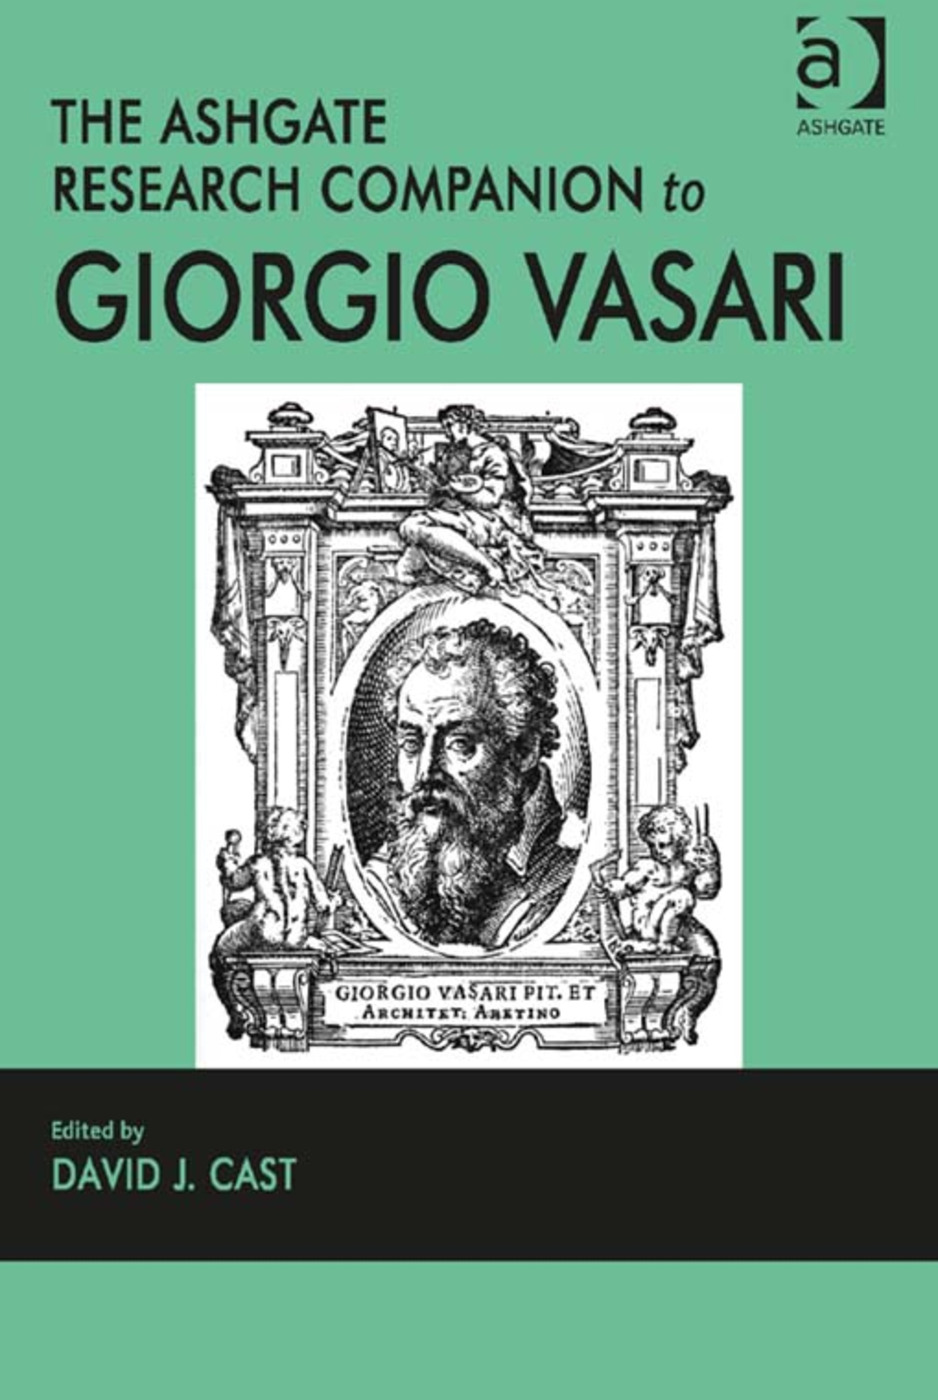 The Ashgate Research Companion to Giorgio Vasari book cover